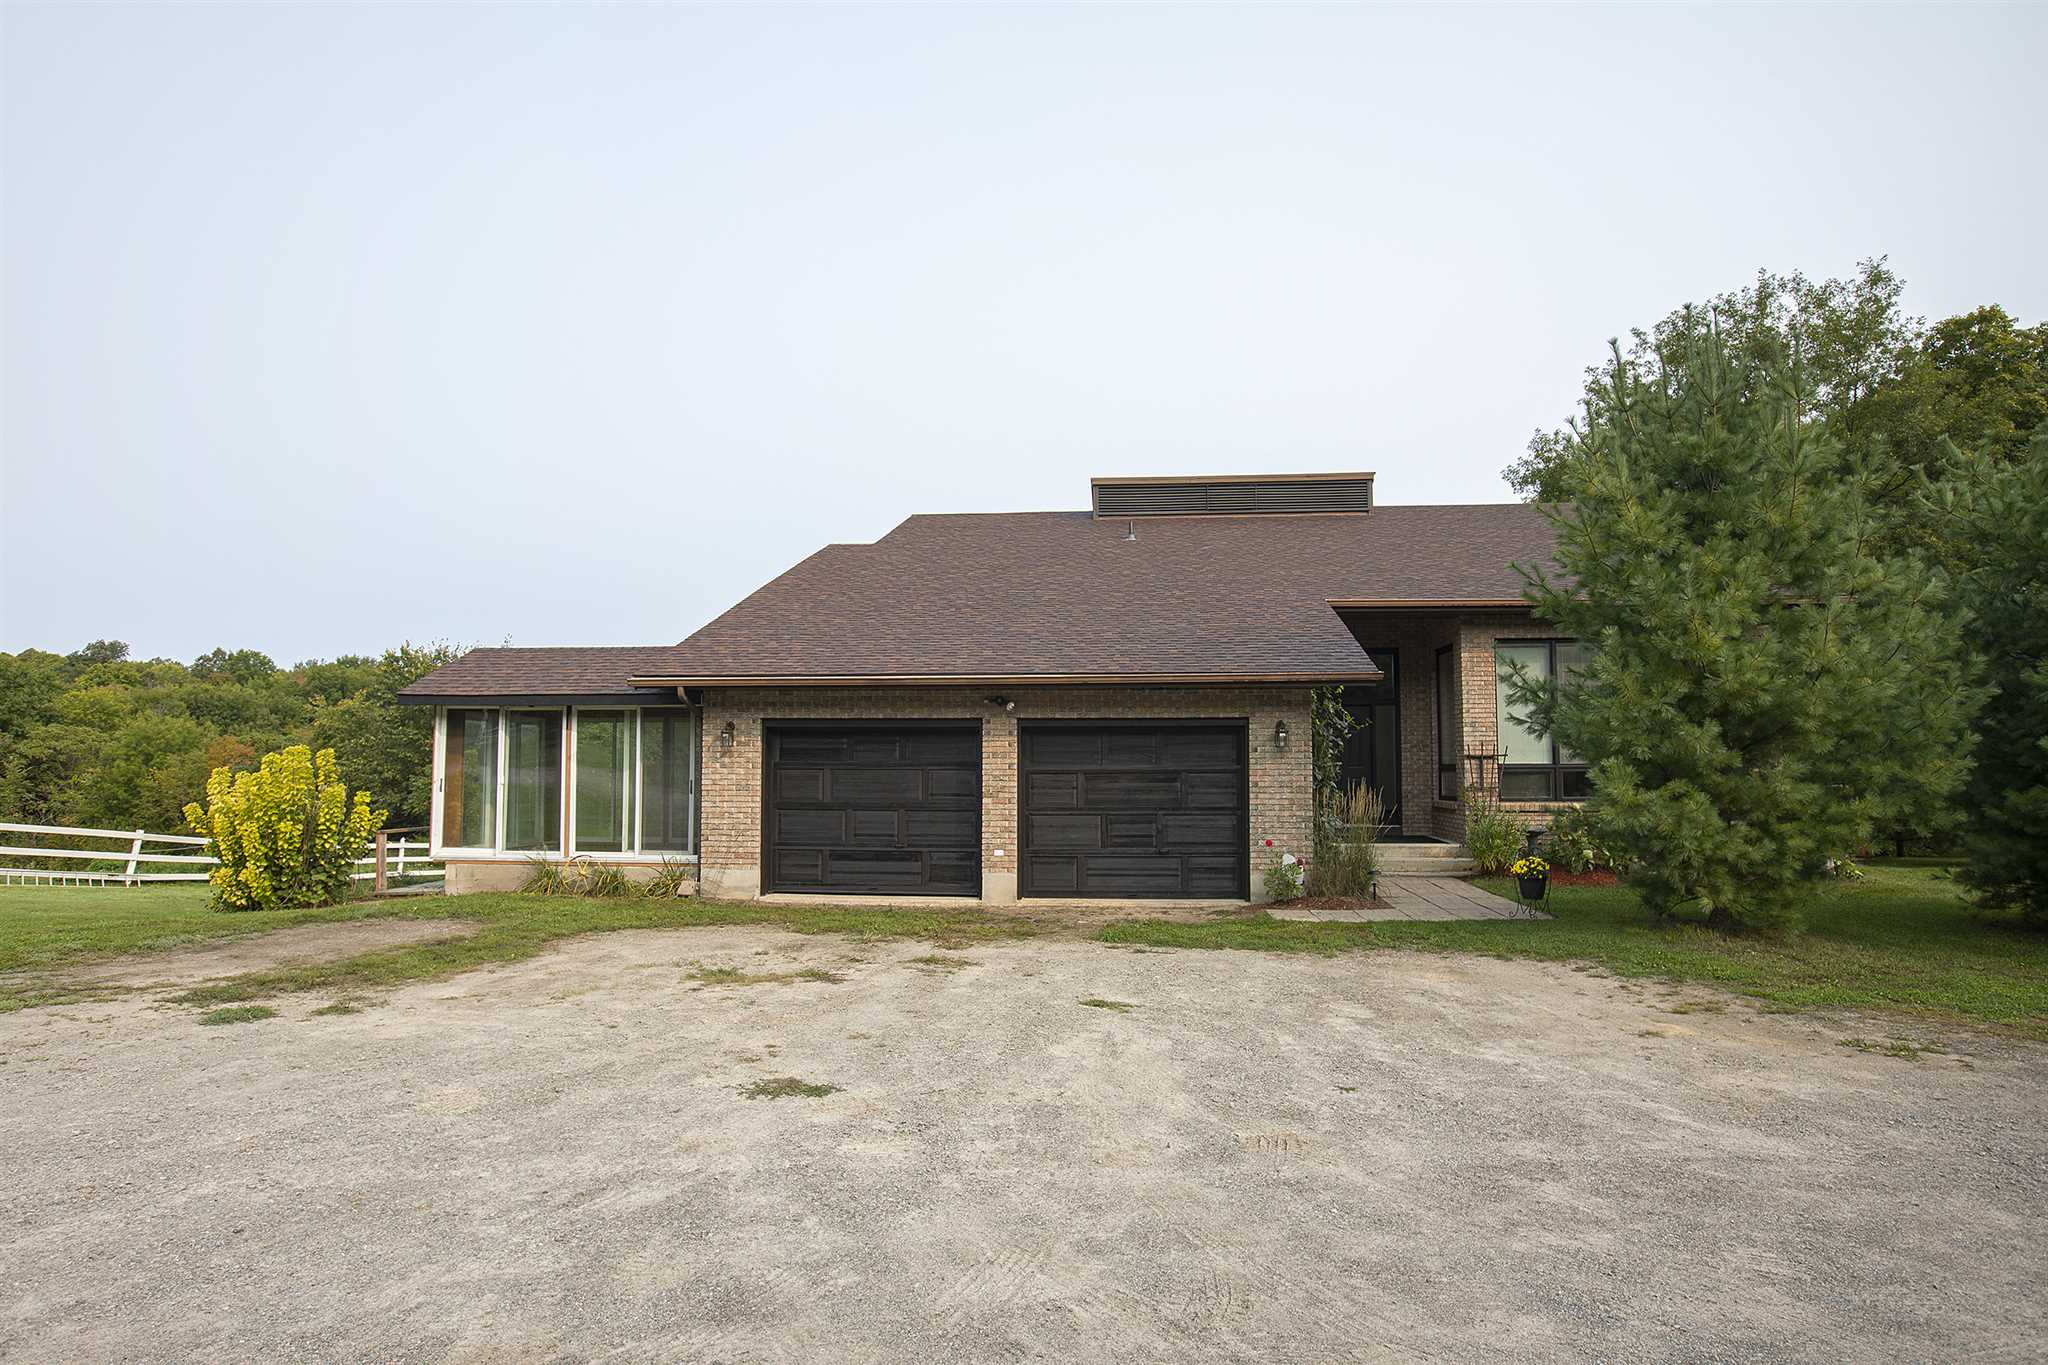 292 Back Street, Leeds & 1000 Islands Township Ontario, Canada